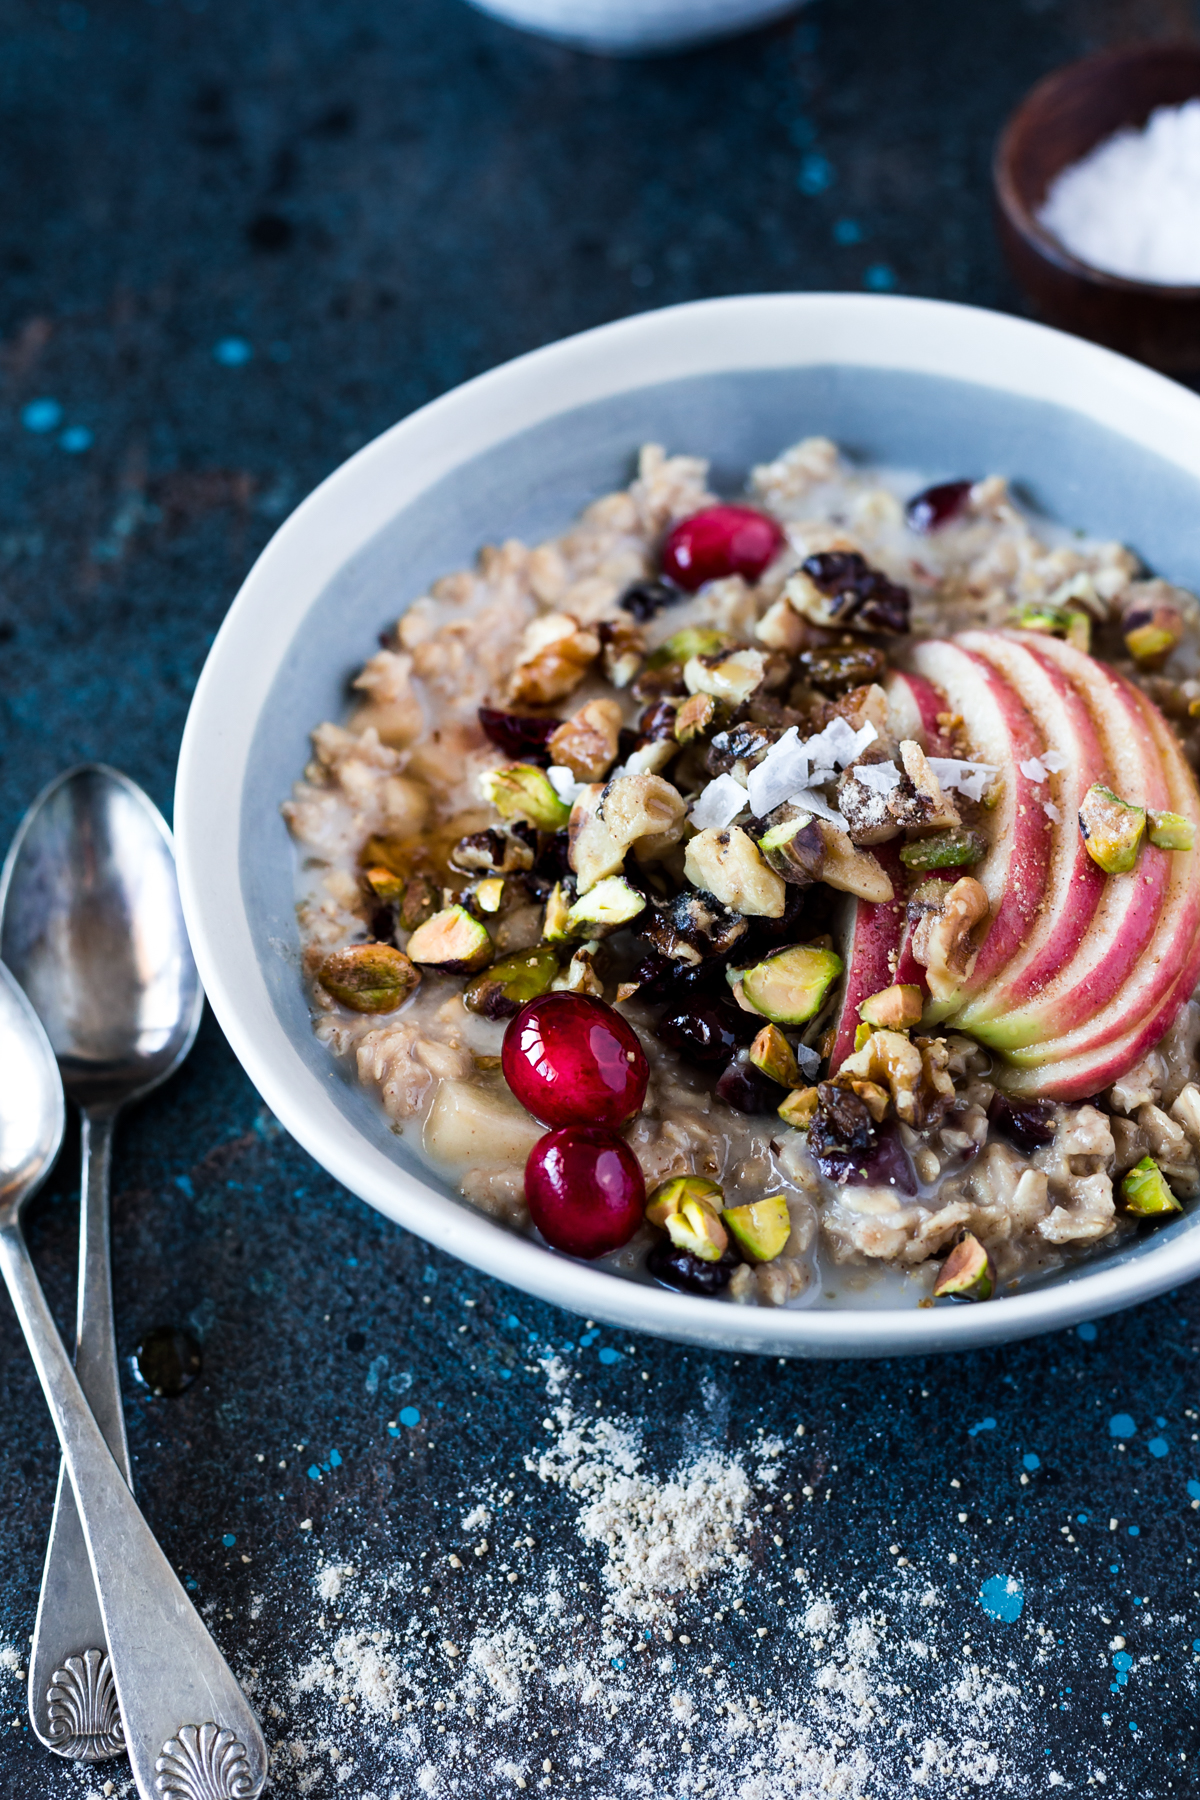 bowl of slow cooker warm apple and cranberry overnight oats topped with sliced apple, pistachios, walnuts, and fresh cranberries